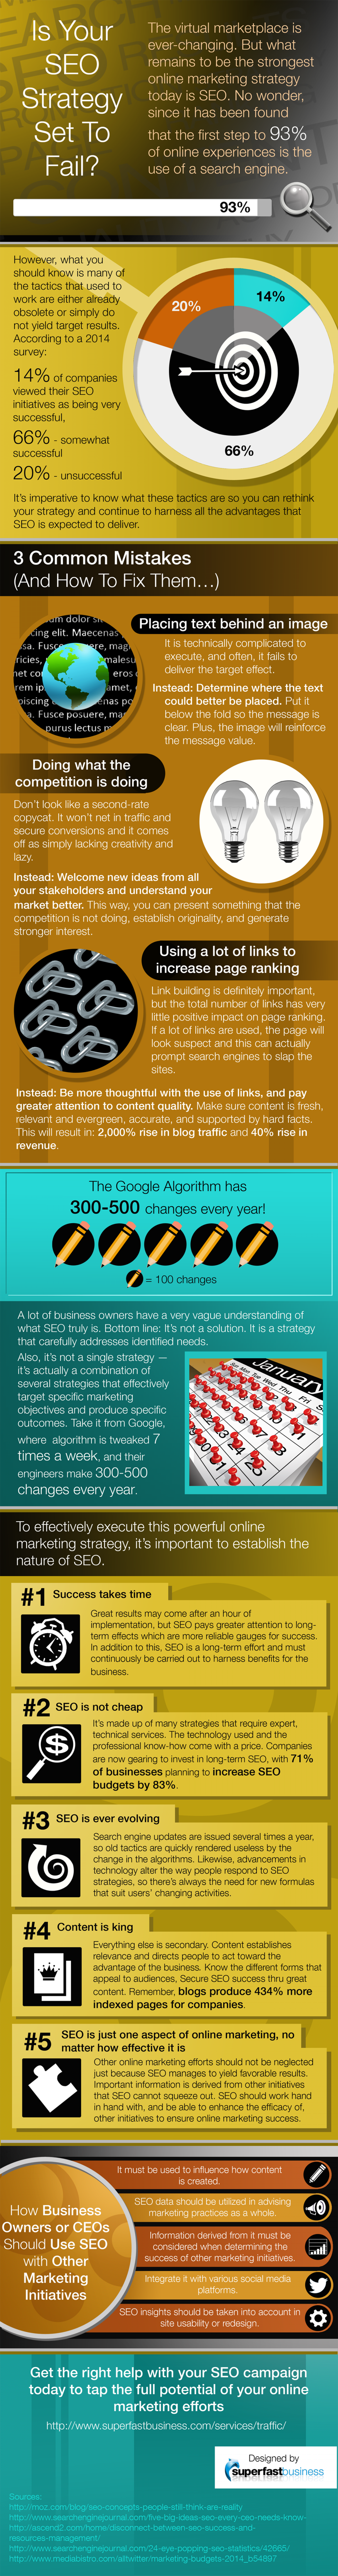 Is Your SEO Strategy Set To Fail? Infographic